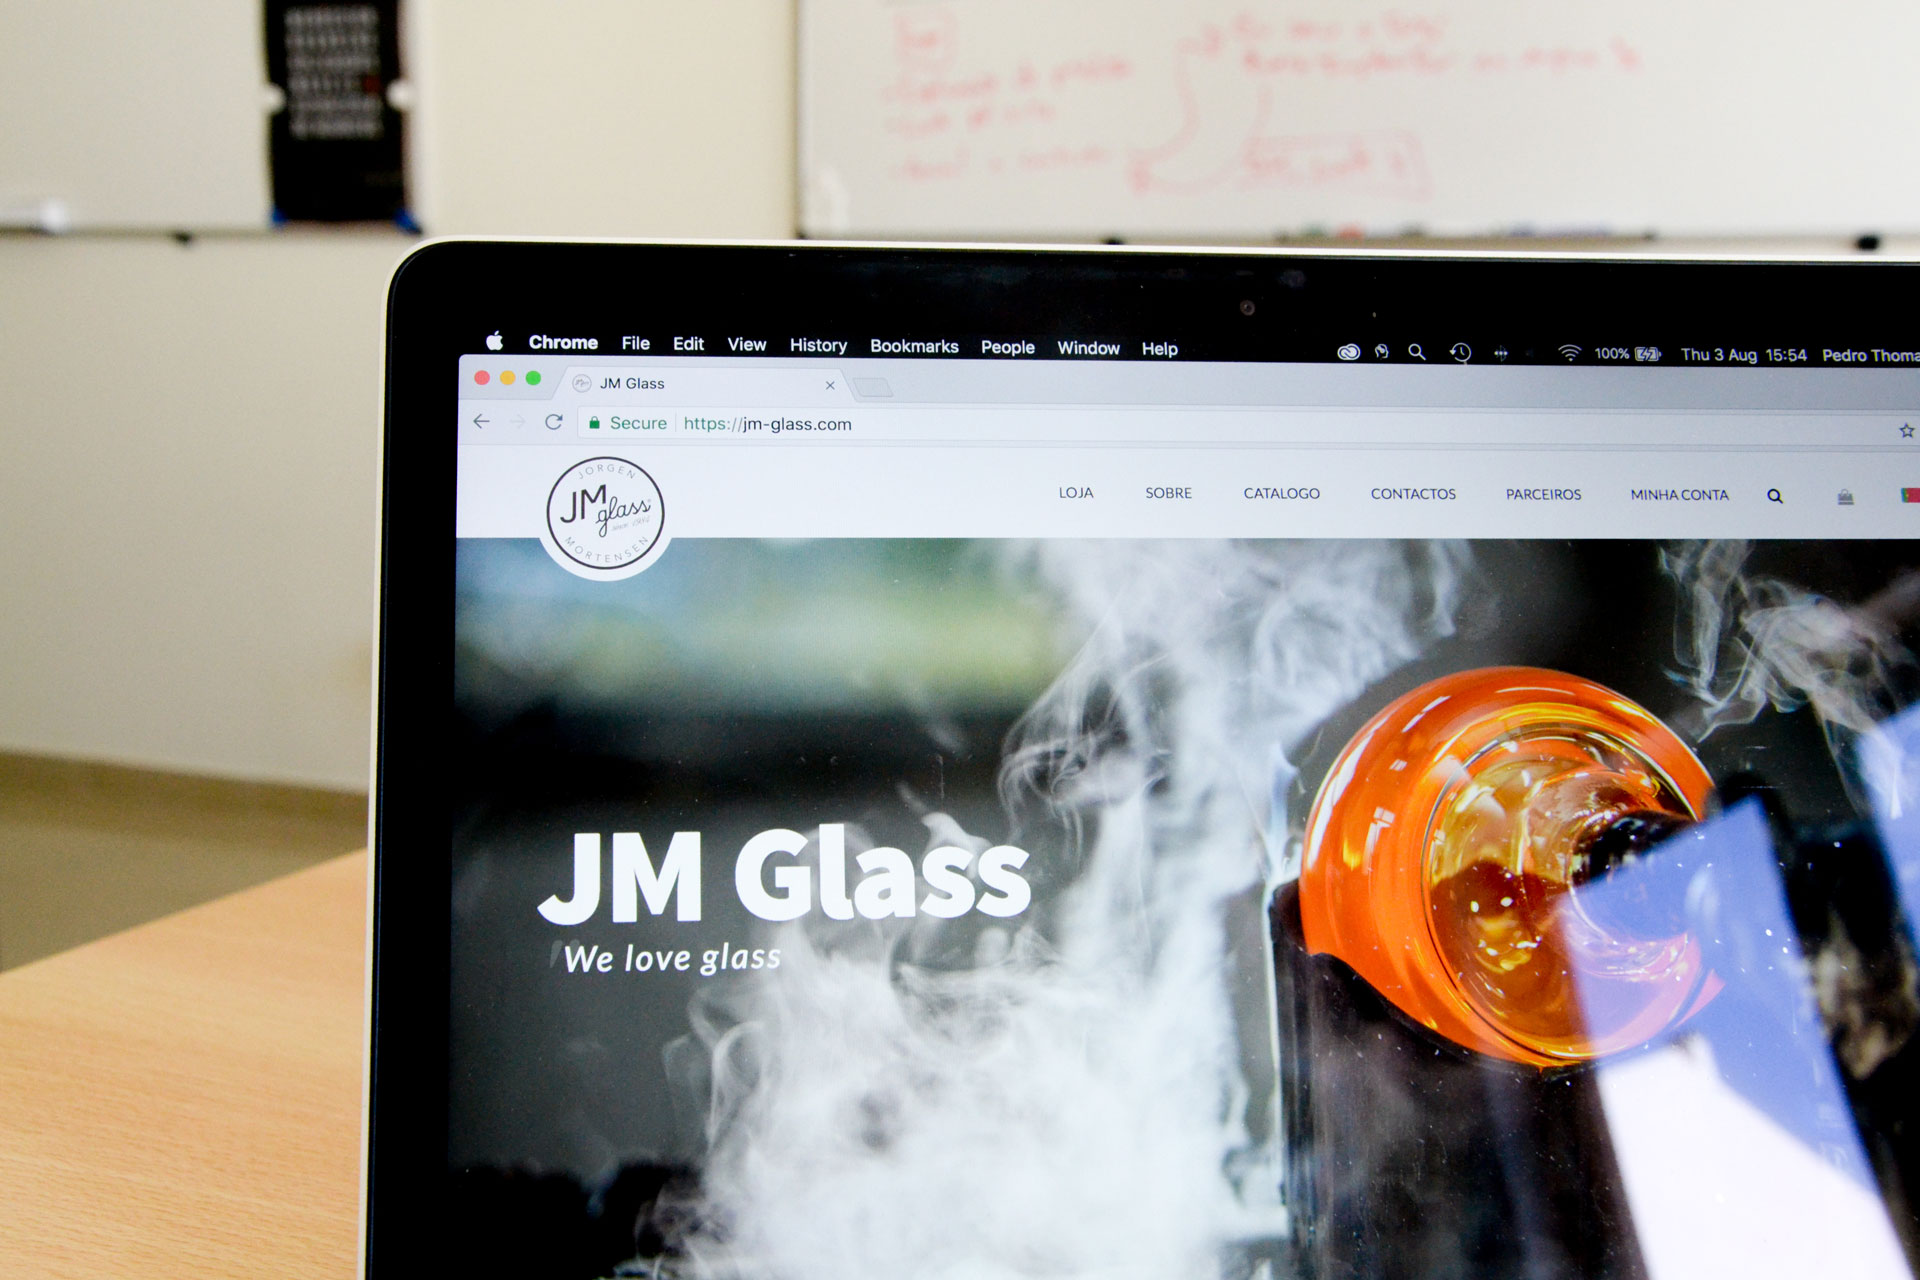 JM Glass